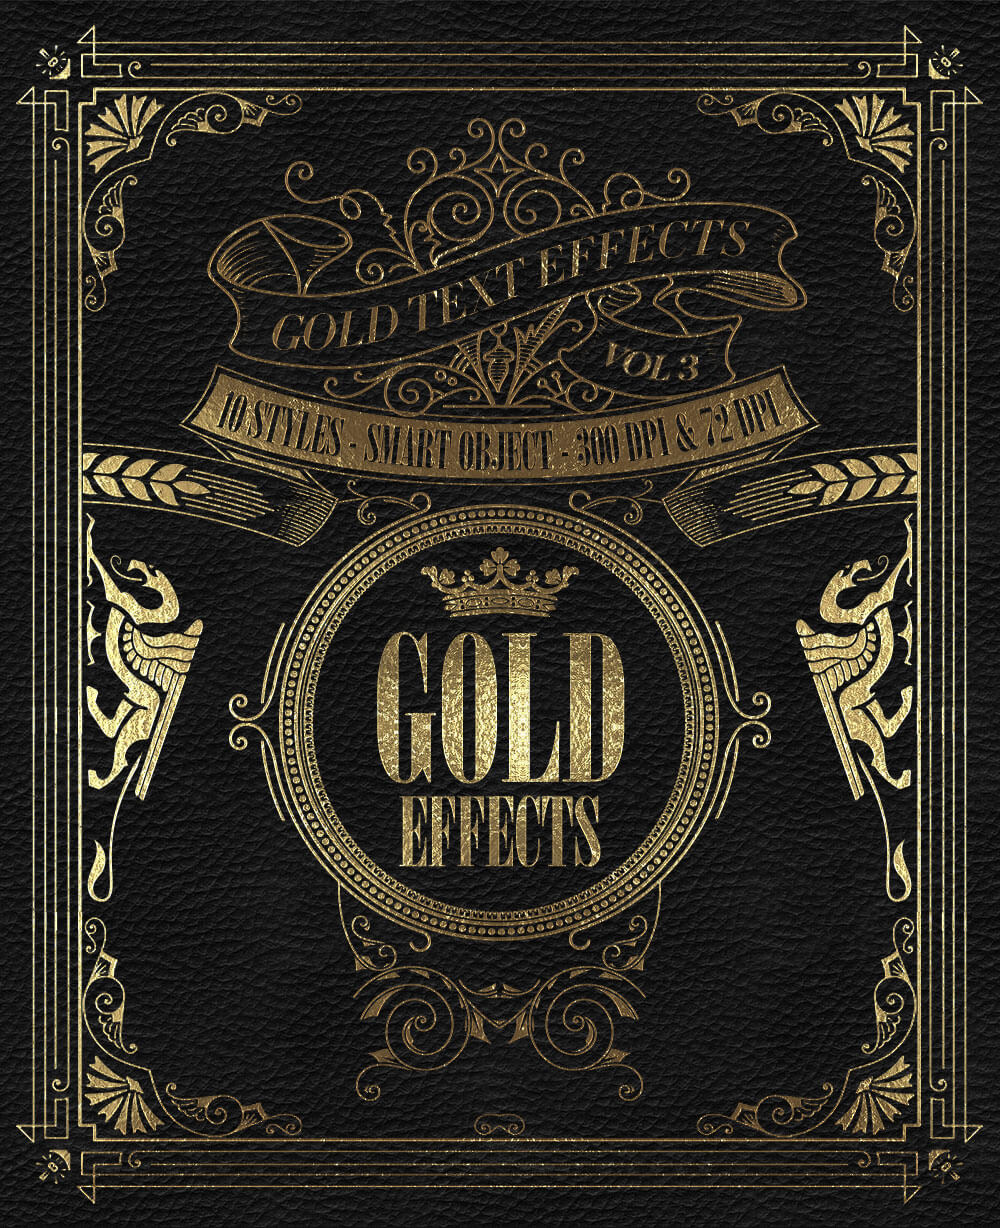 The Golden Foil Text Effects Bundle - Golden Effects Vol. 3